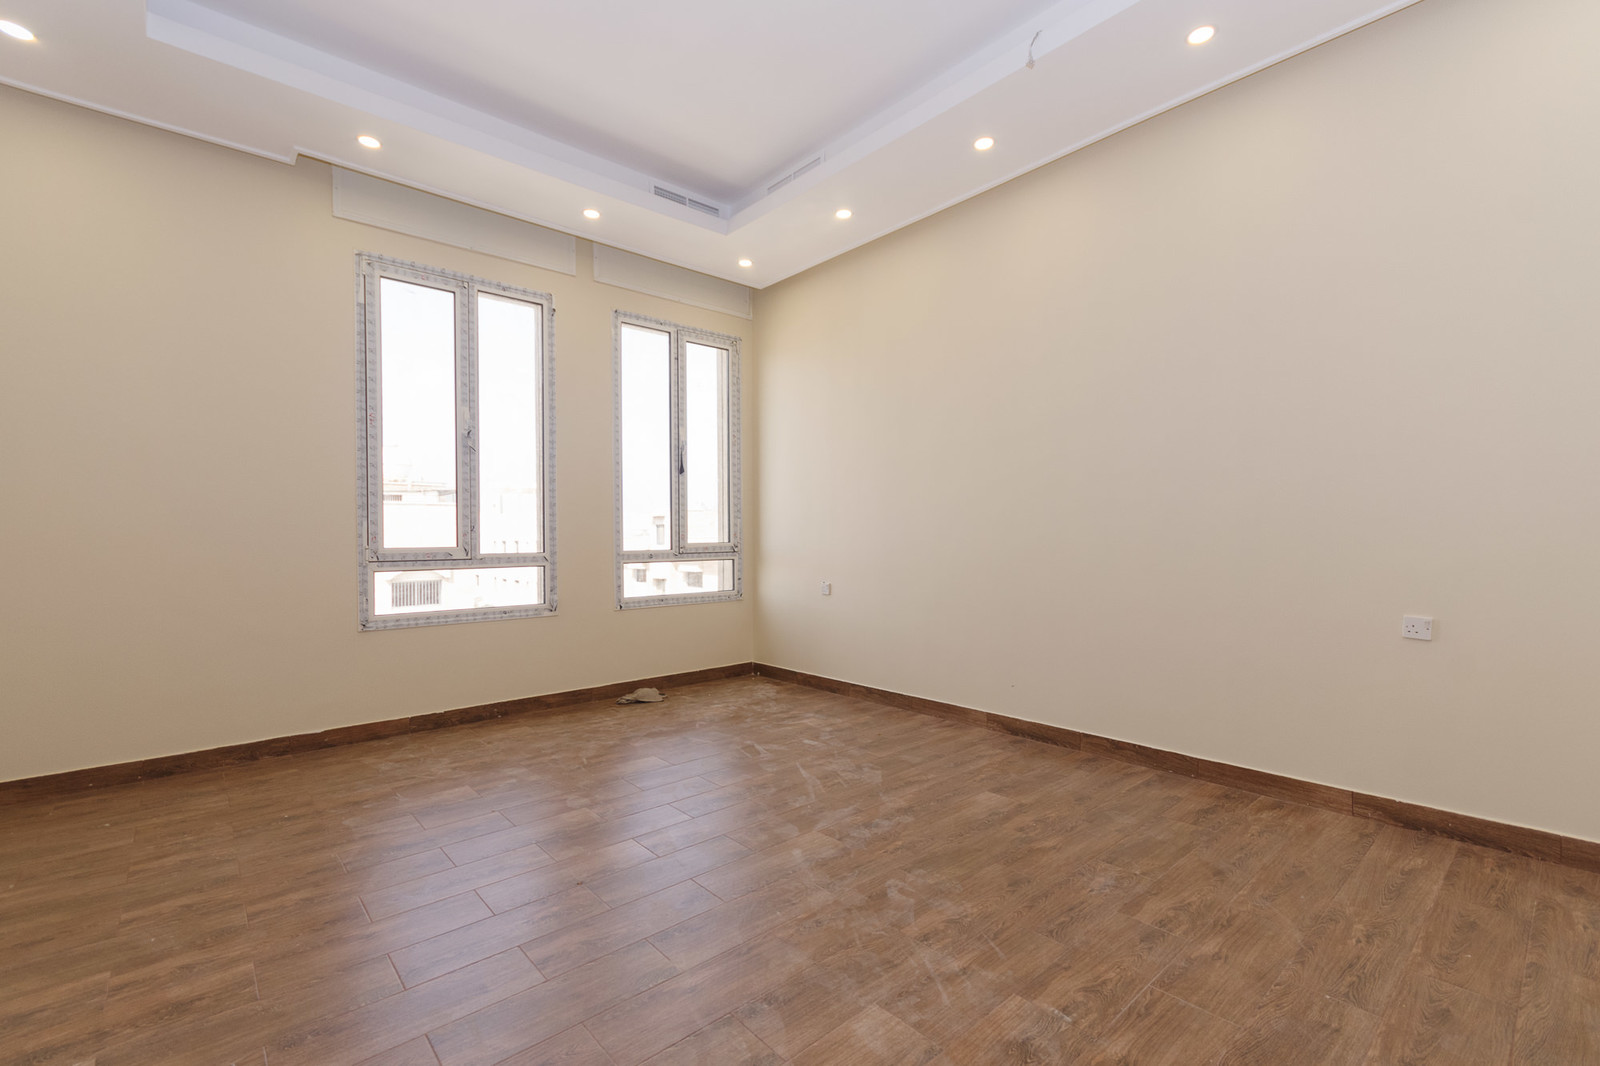 Salwa – new, unfurnished, four bedroom apartments